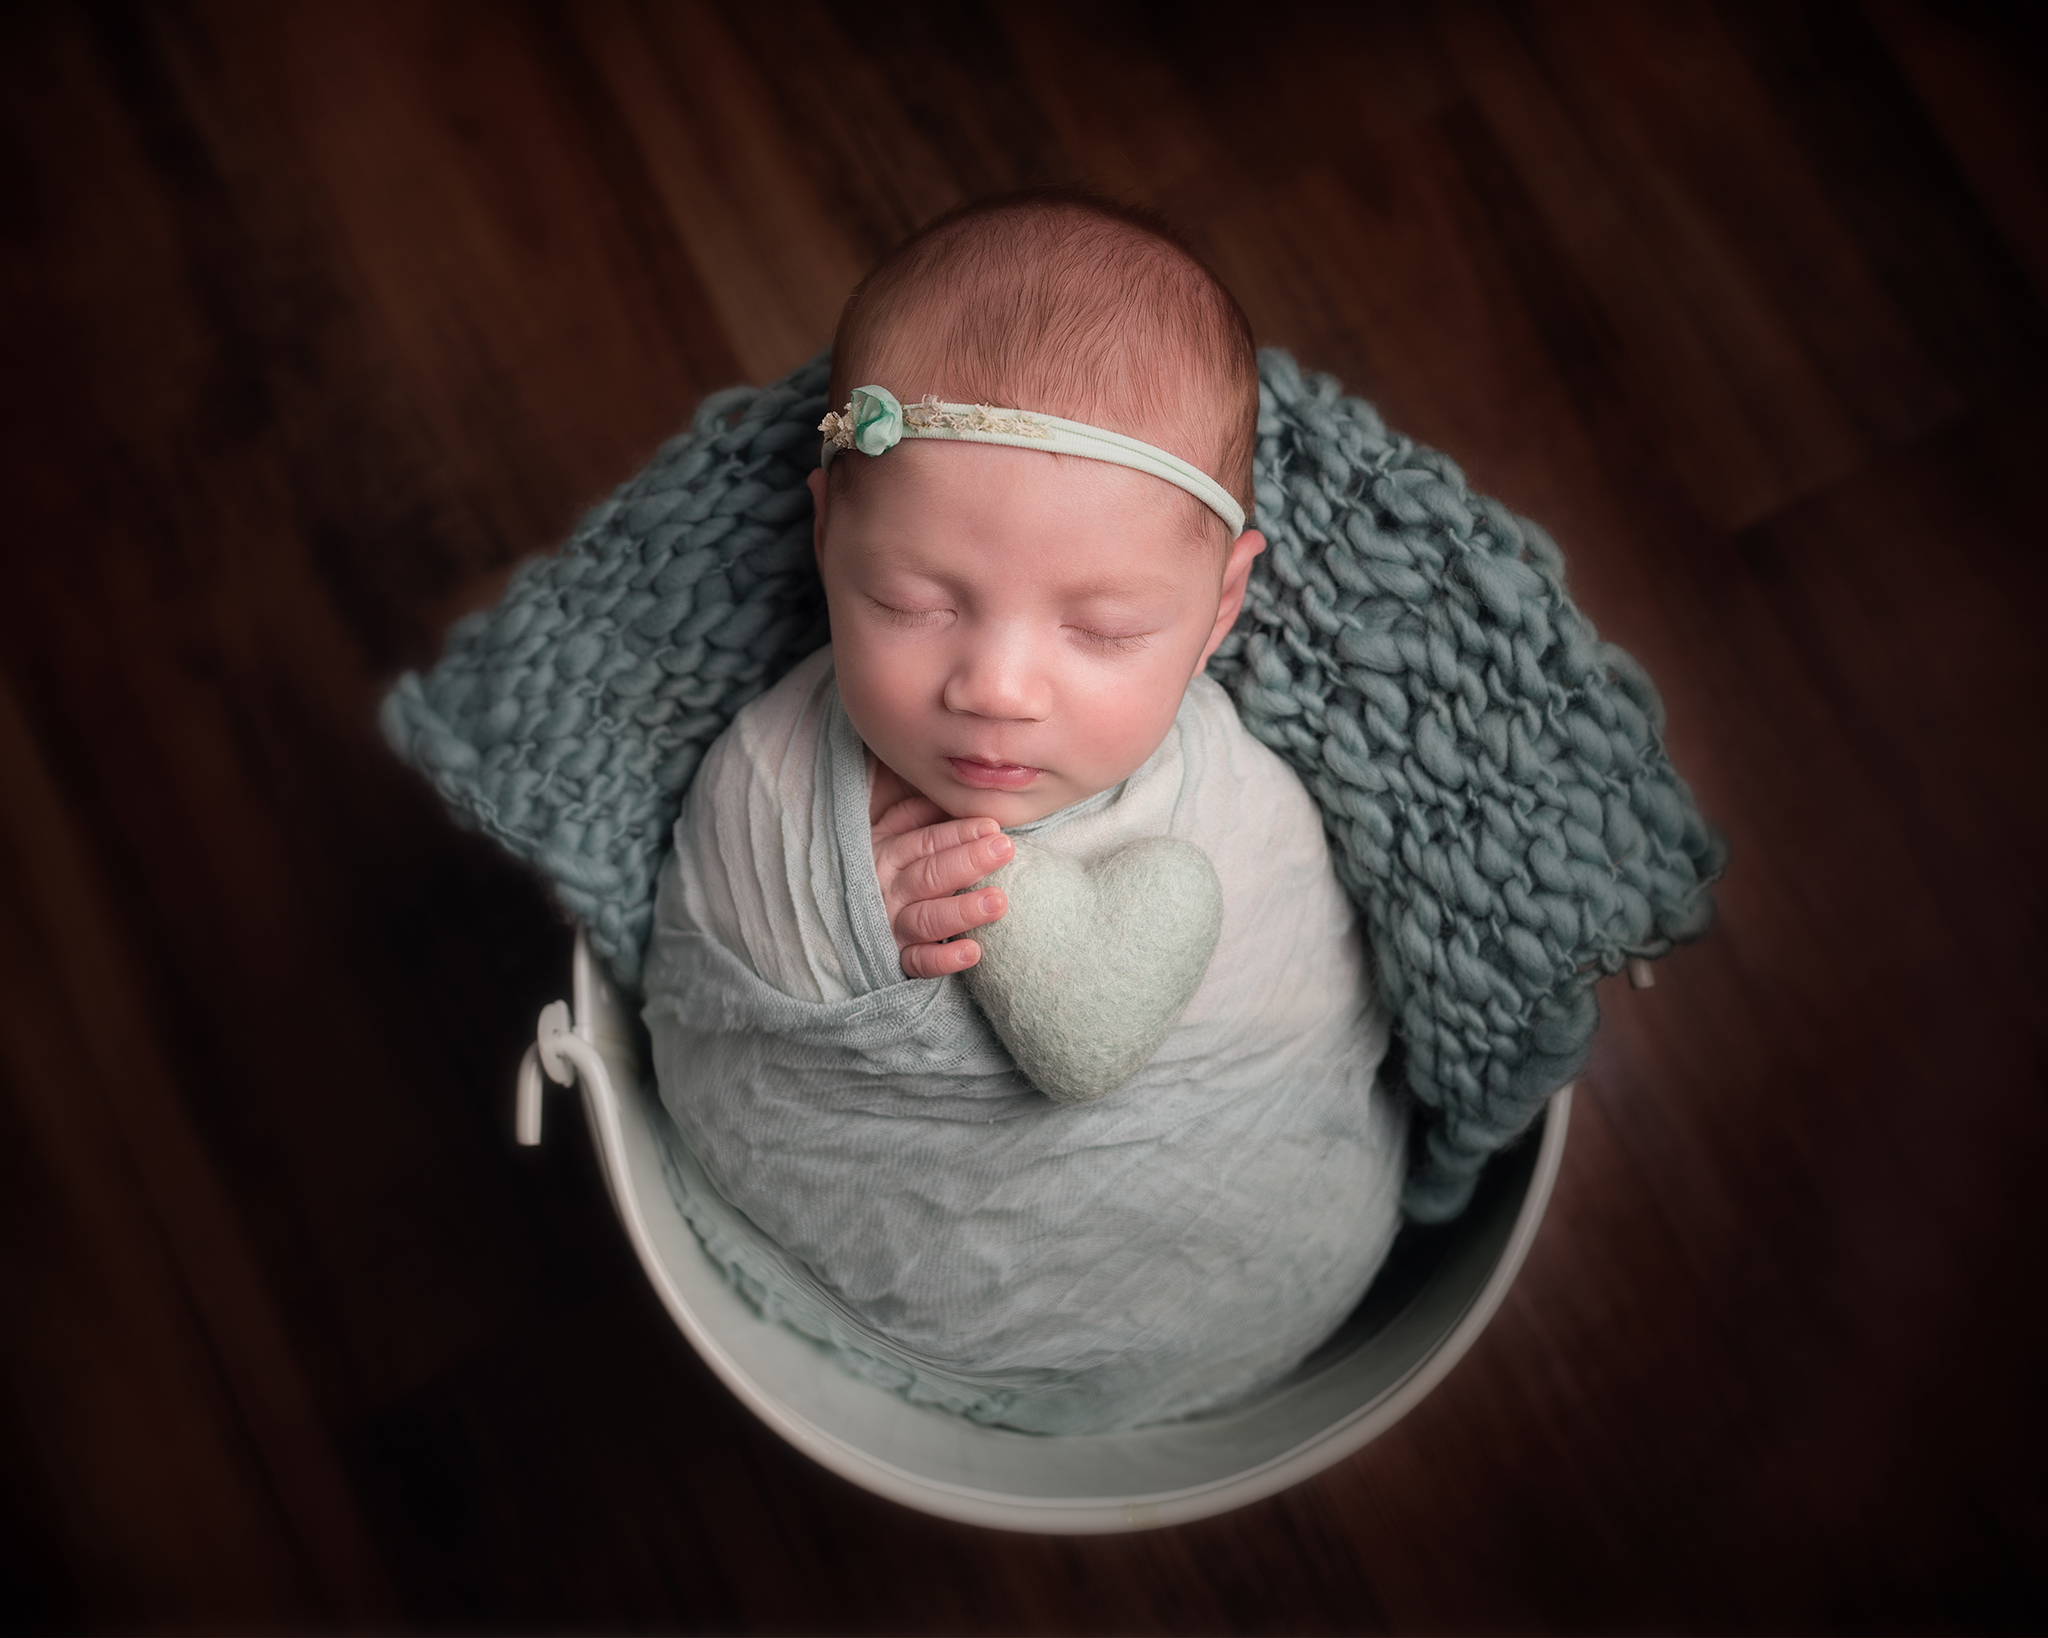 Newborn baby photographer Clitheroe Lancashire, covering Burnley and Blackburn for baby photos